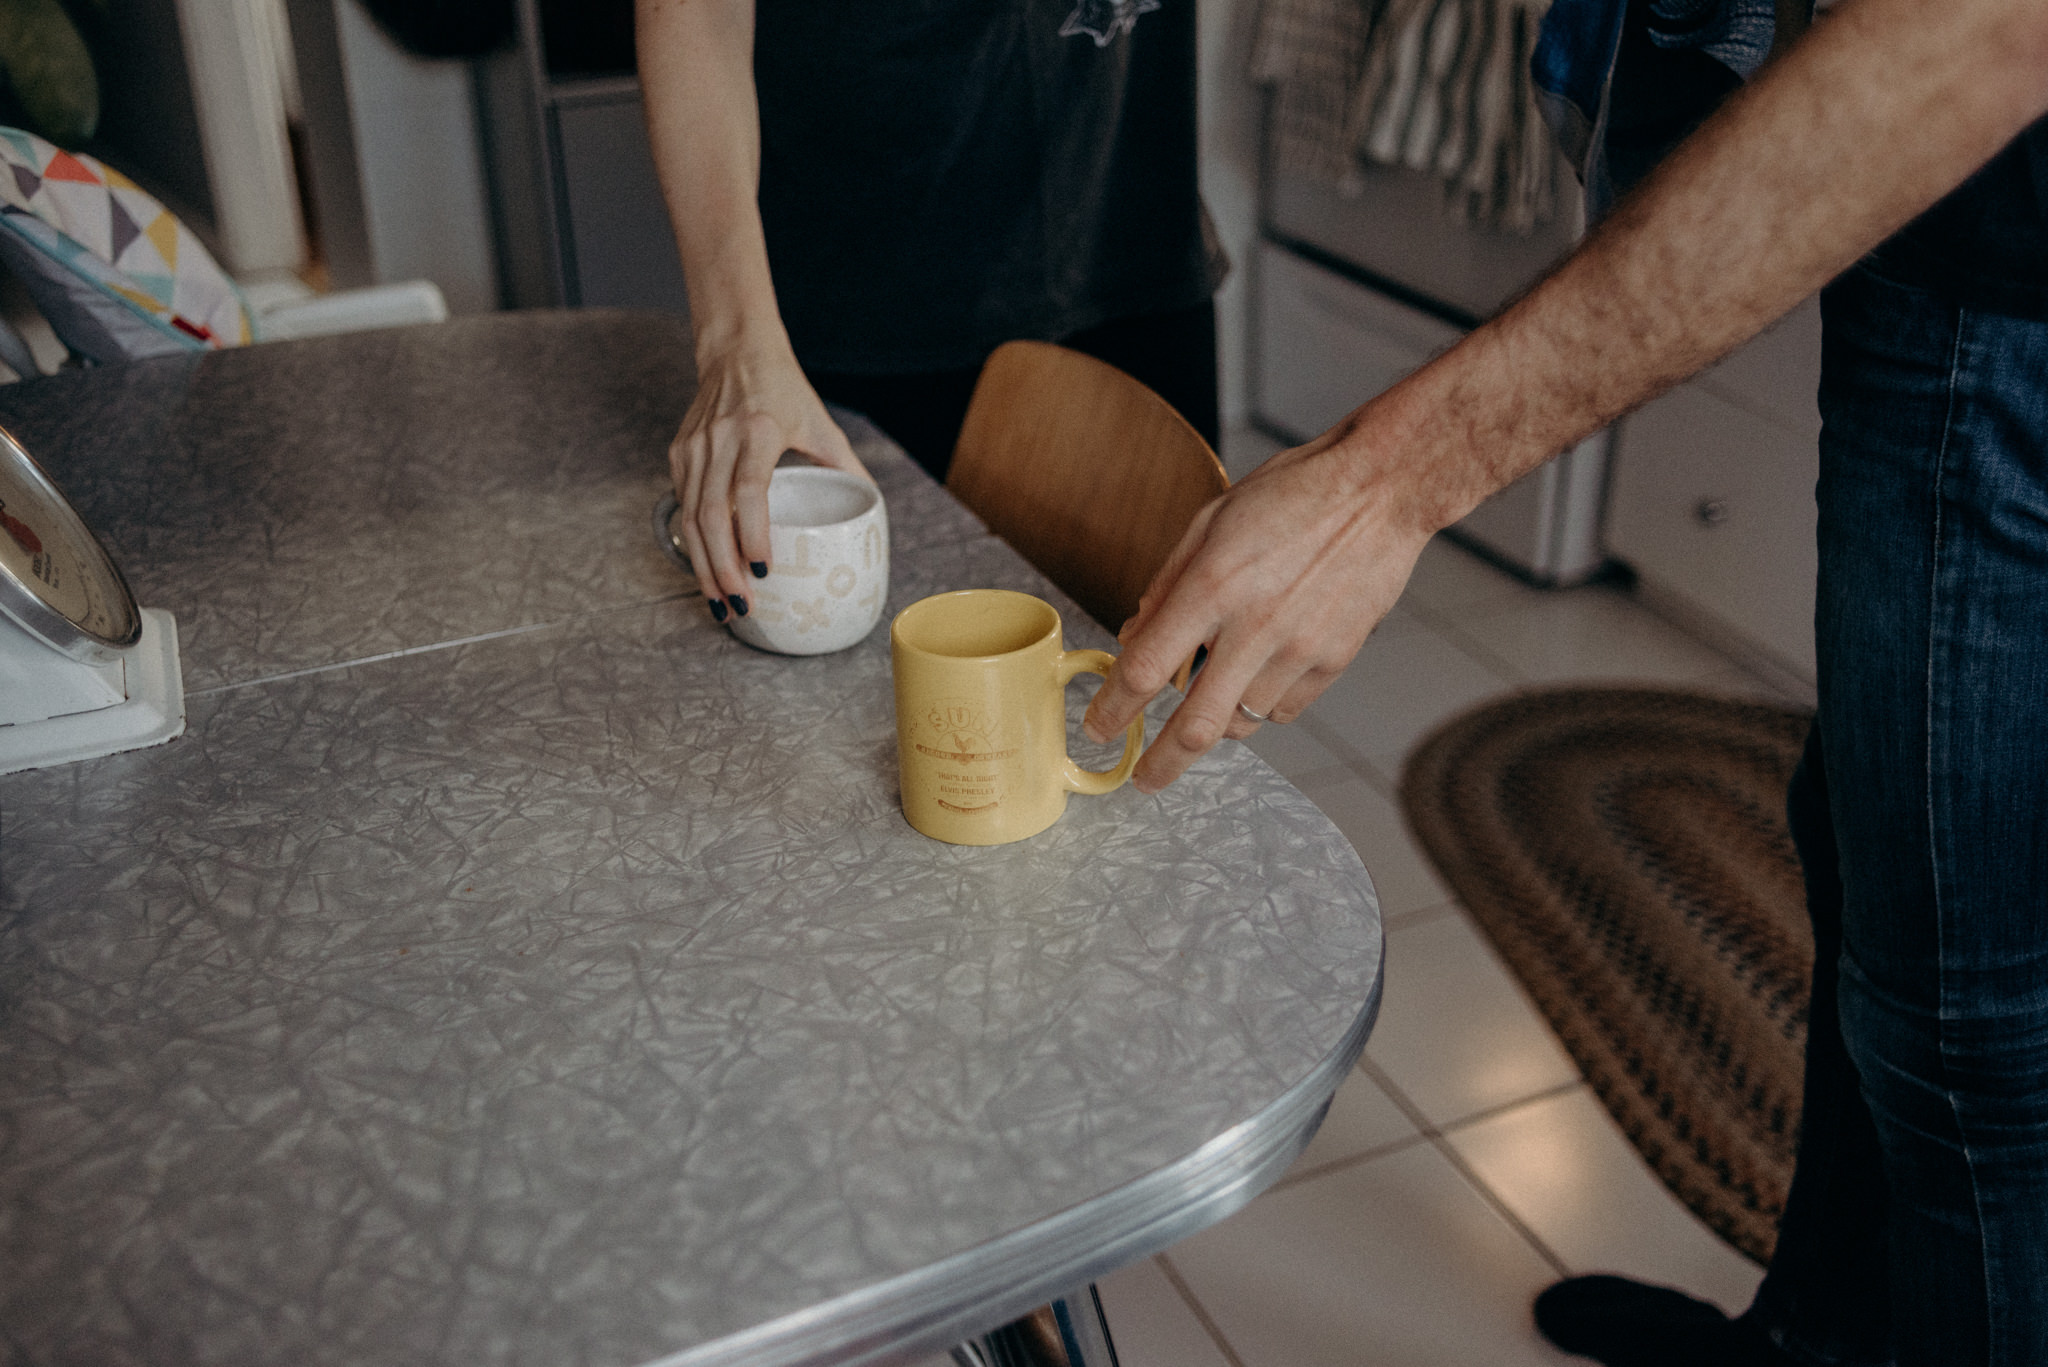 couple reaching for coffee mugs on table in kitchen